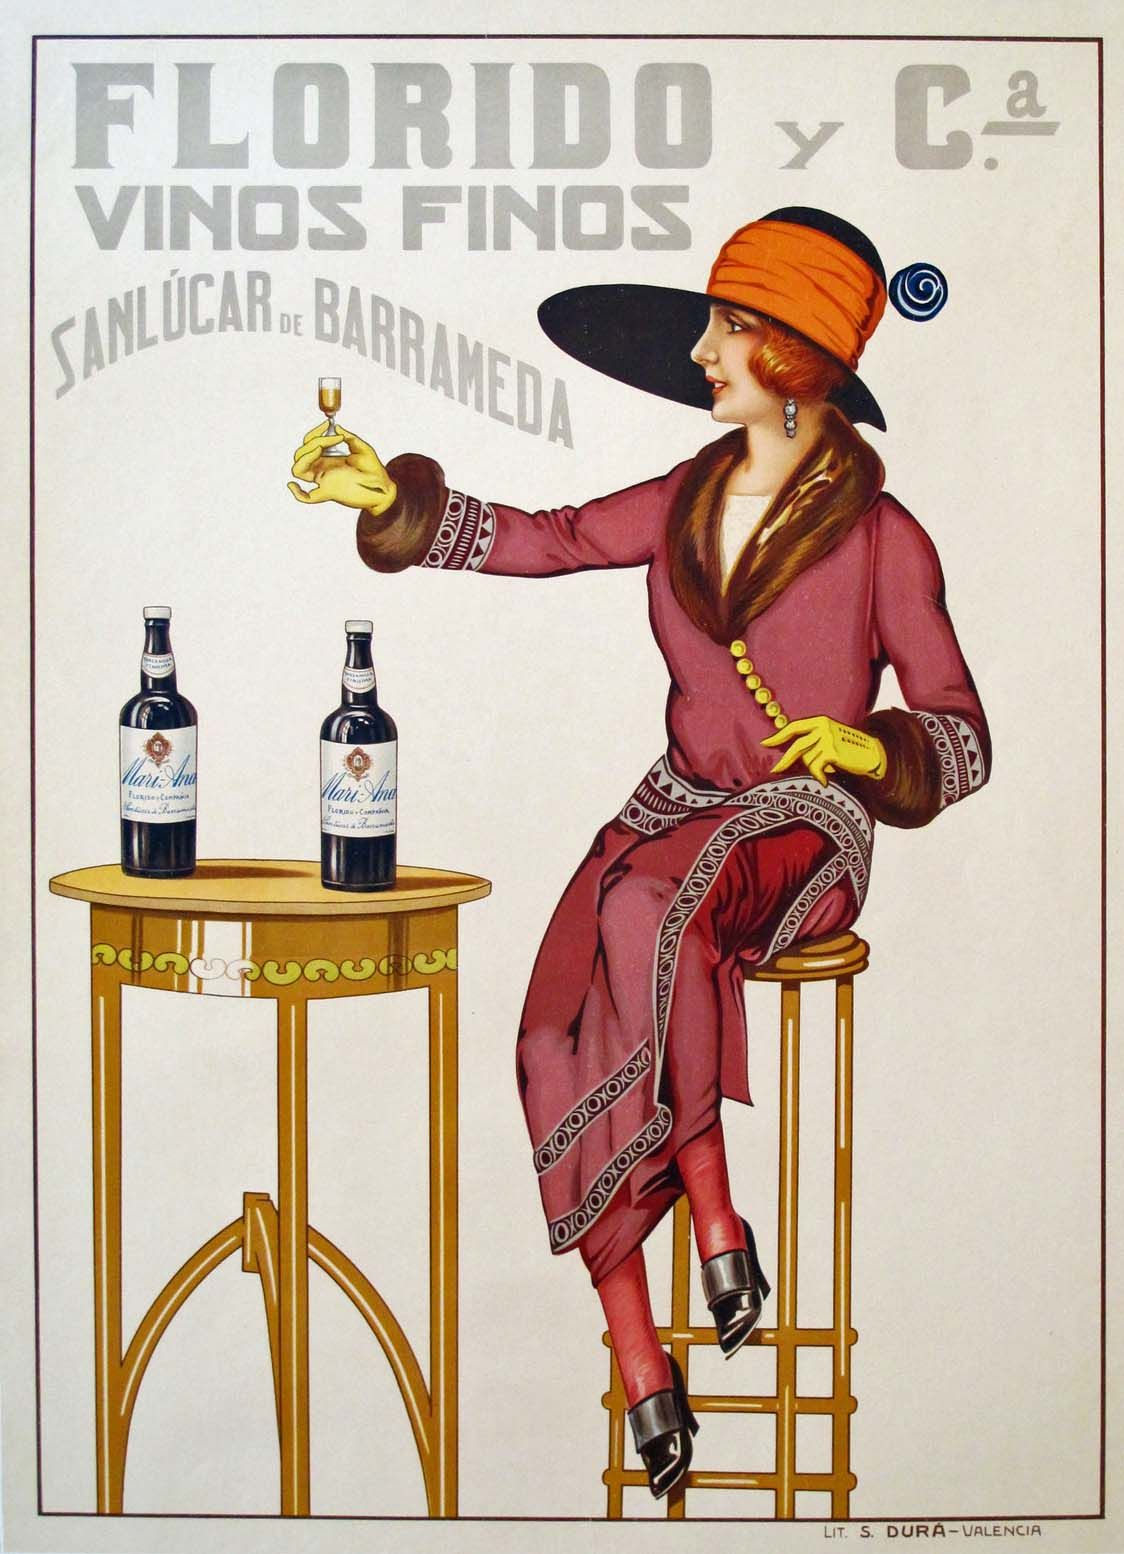 Drinking In Style 1920s Style Vintage Poster Art Art Deco Posters Art Deco Poster